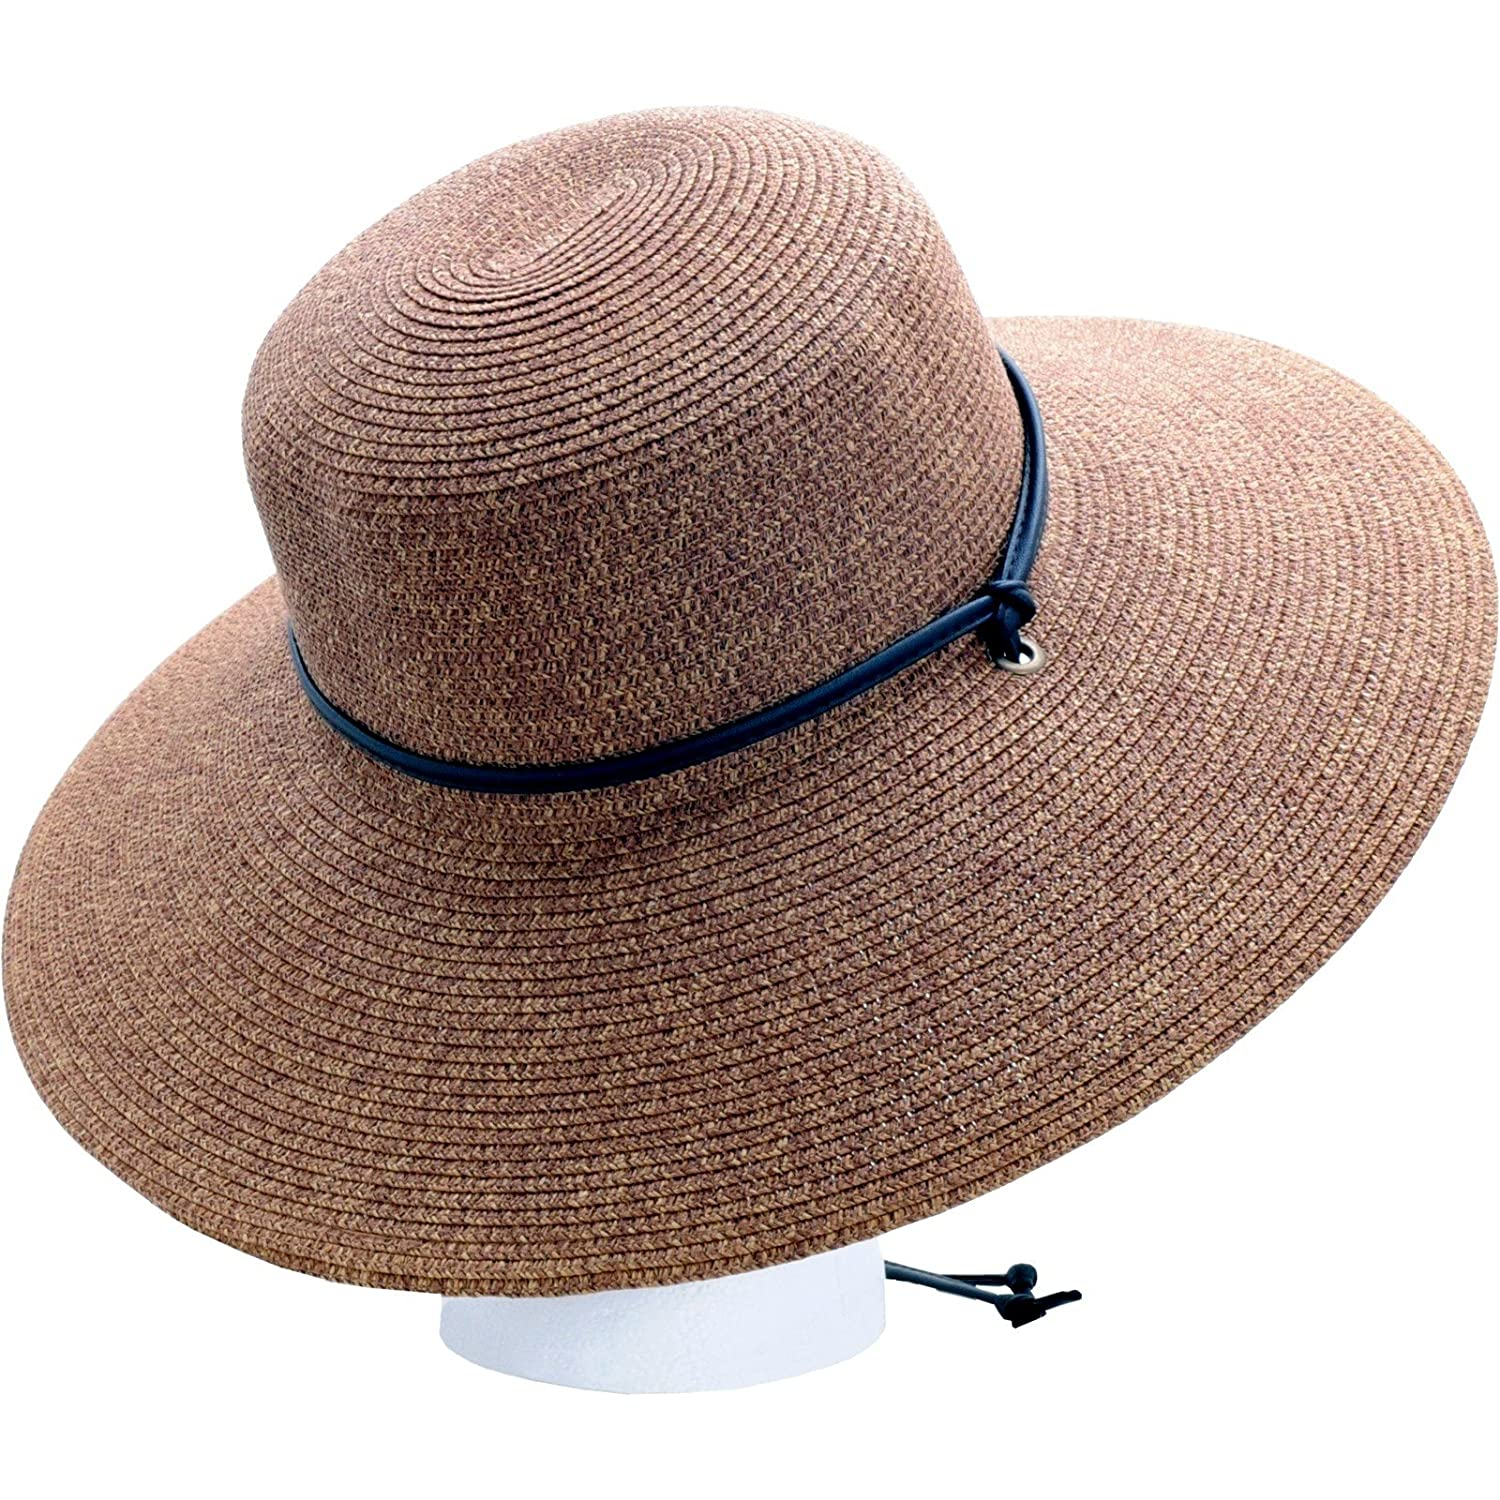 Women's Wide Brim Braided Sun Hat - Dark Brown